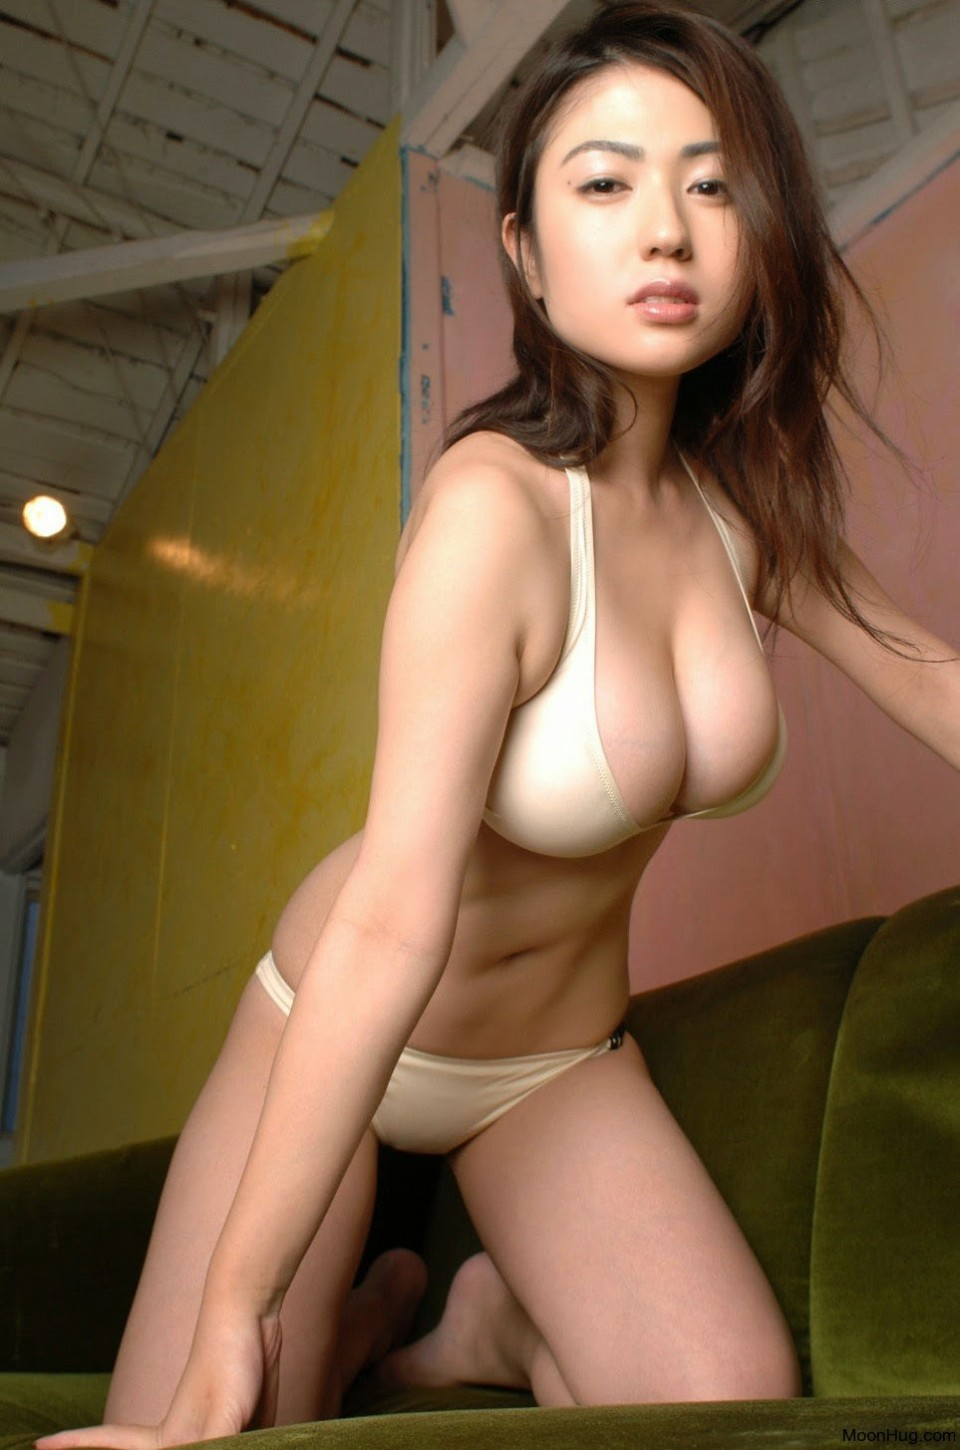 Cerita Sex Hot Model TOGE